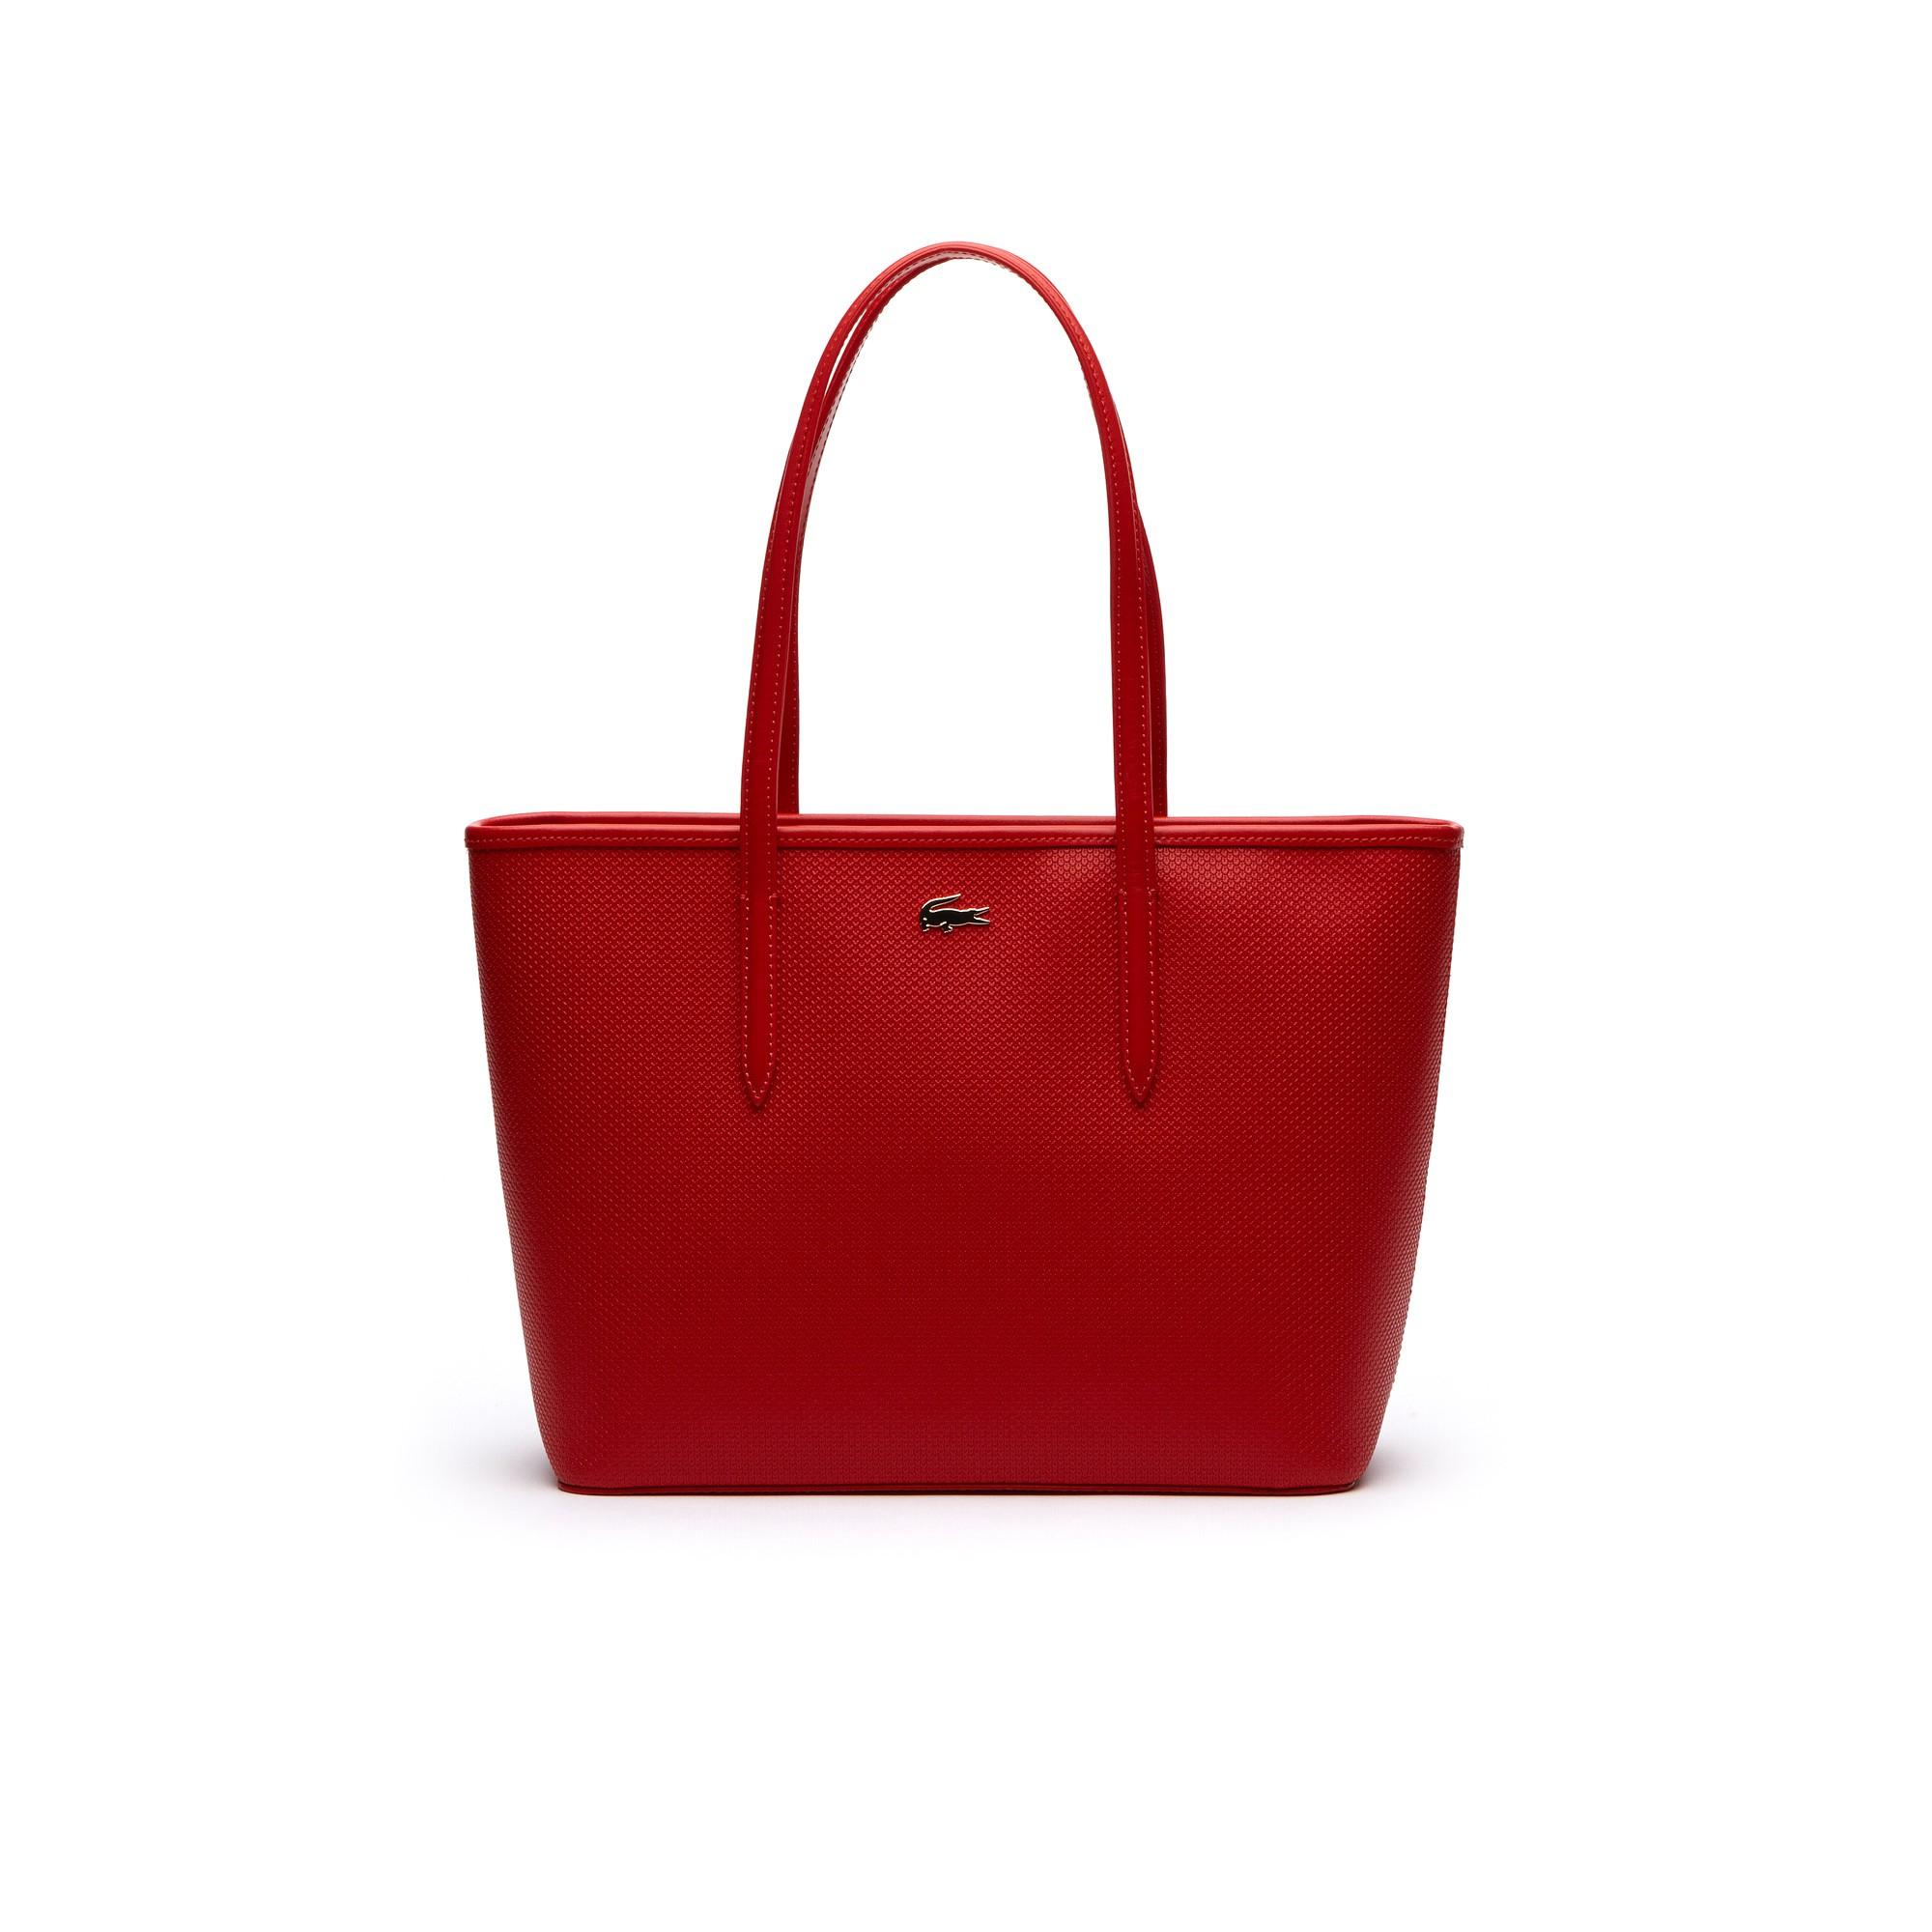 ce38c33951 Women's Chantaco Piqué Leather Tote Bag in High Risk Red